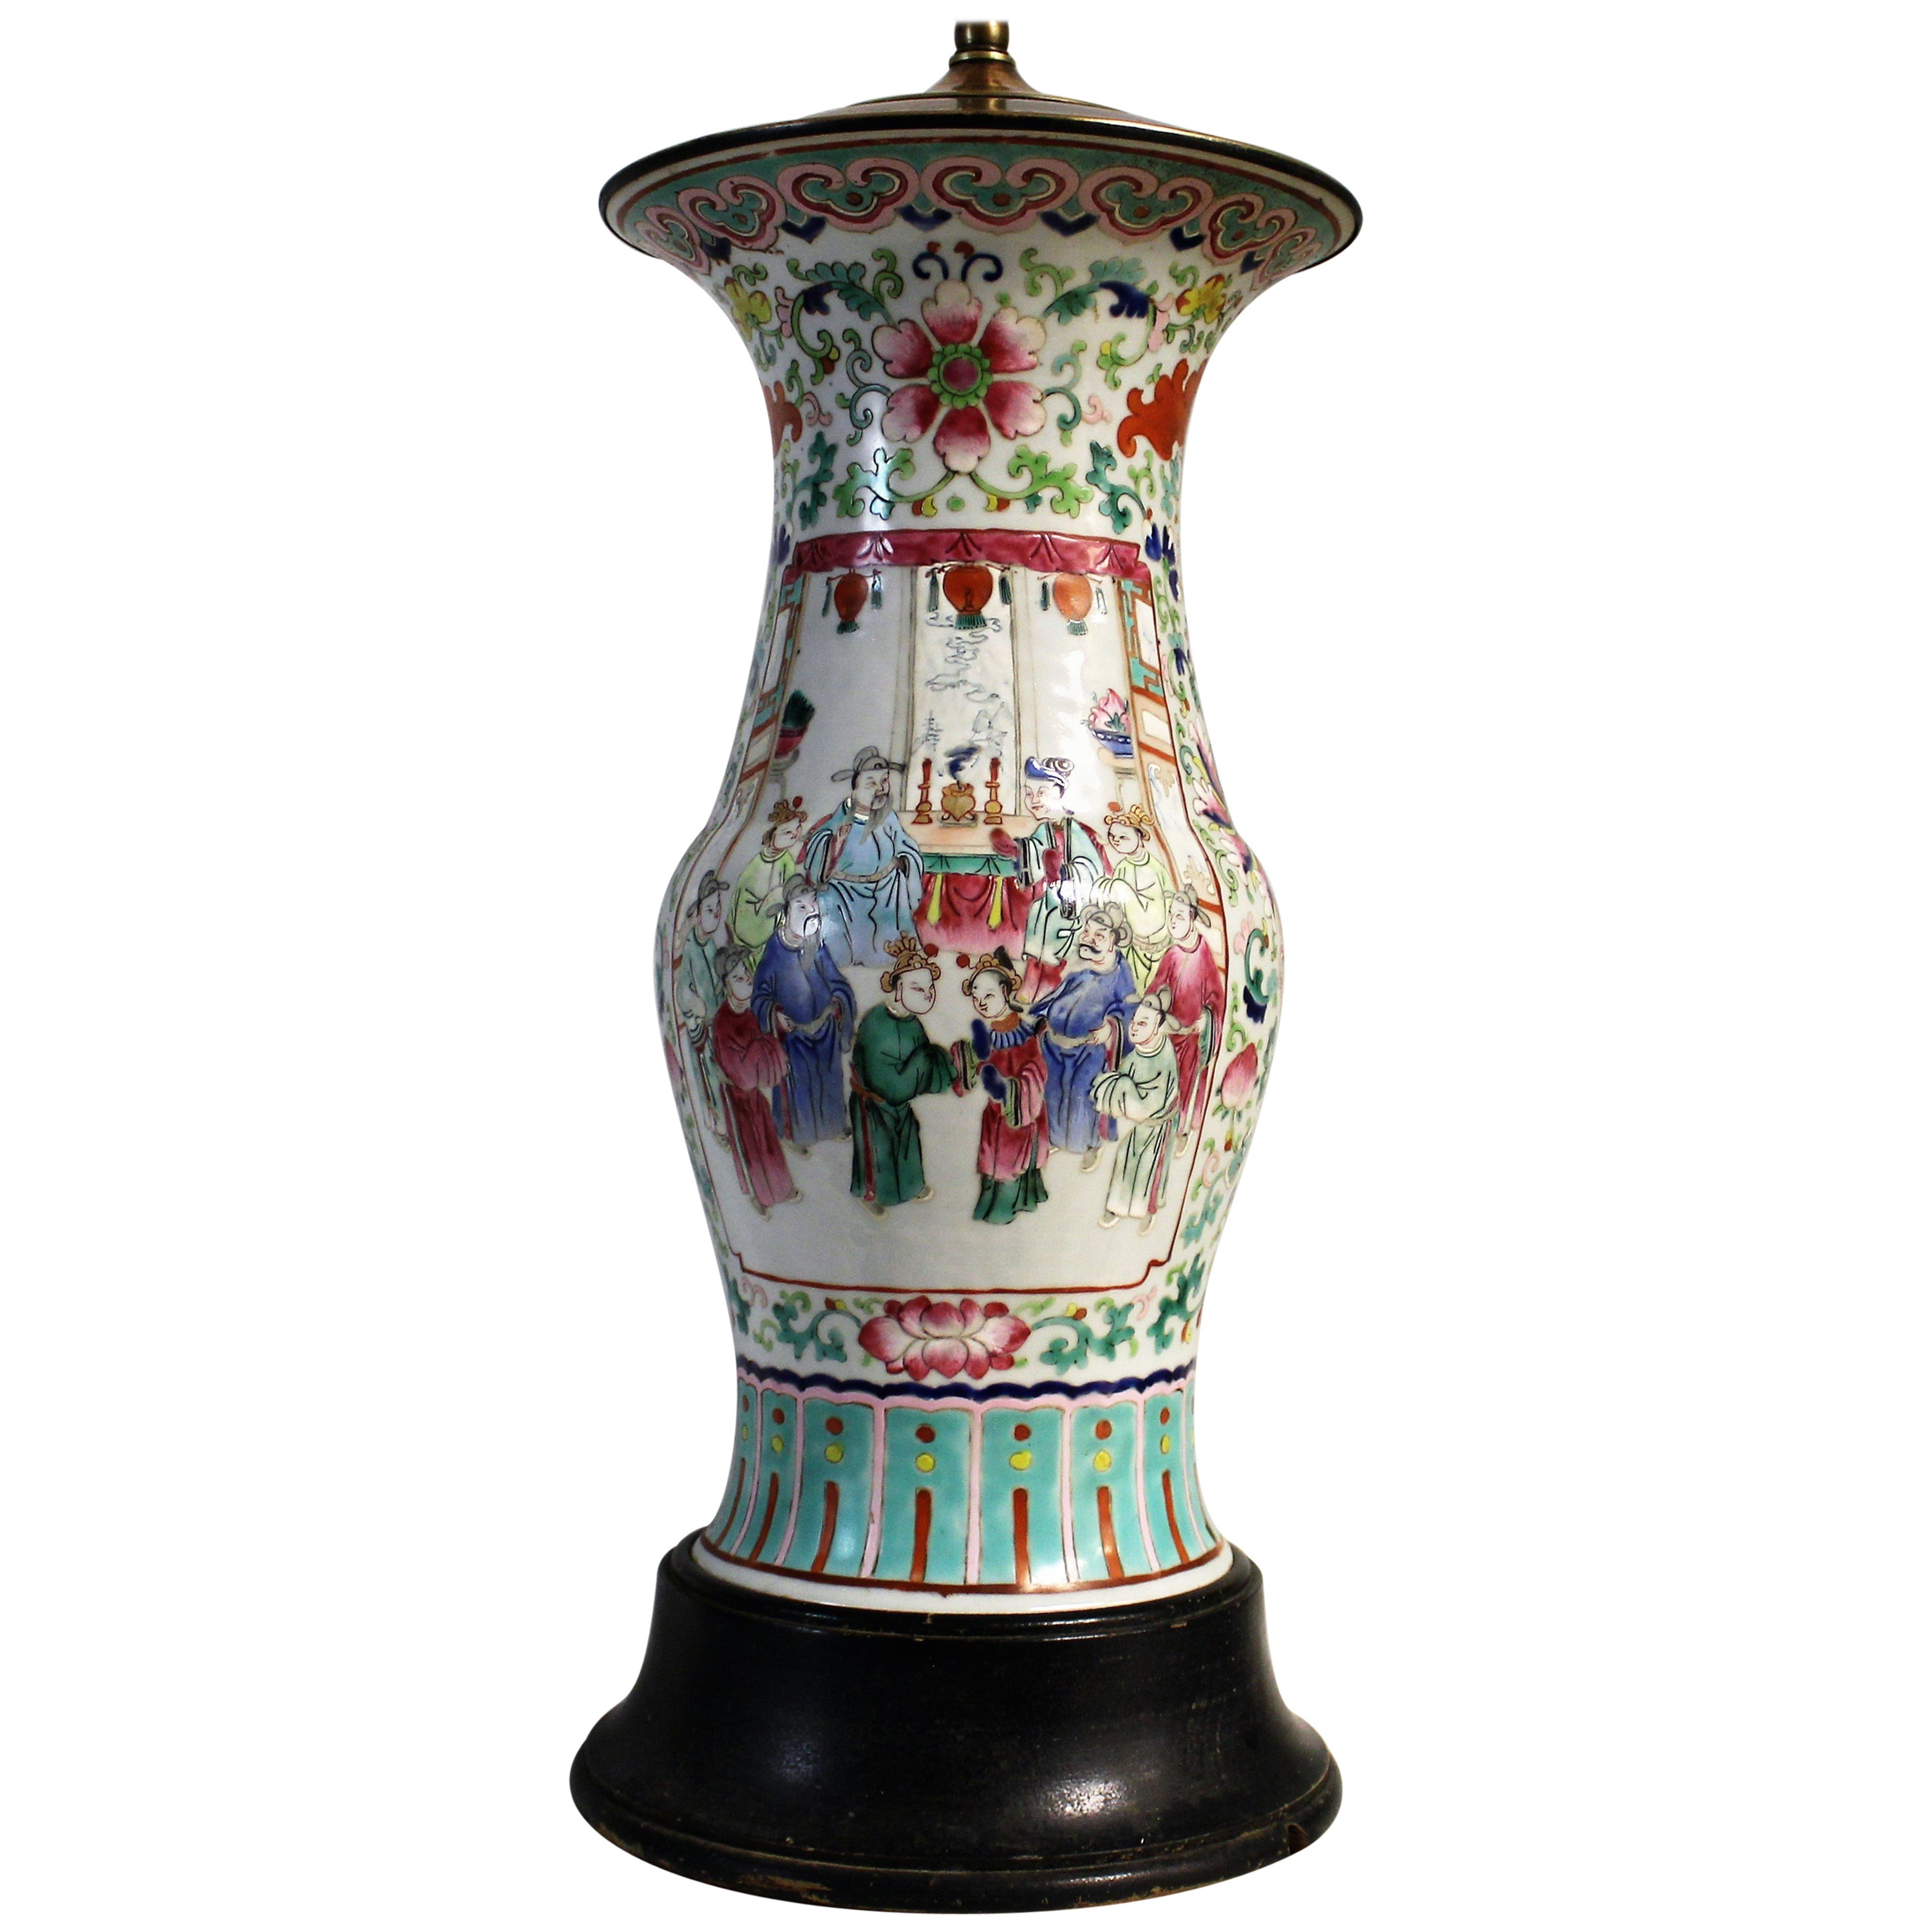 Early 20th Century, Chinese Porcelain Lamp